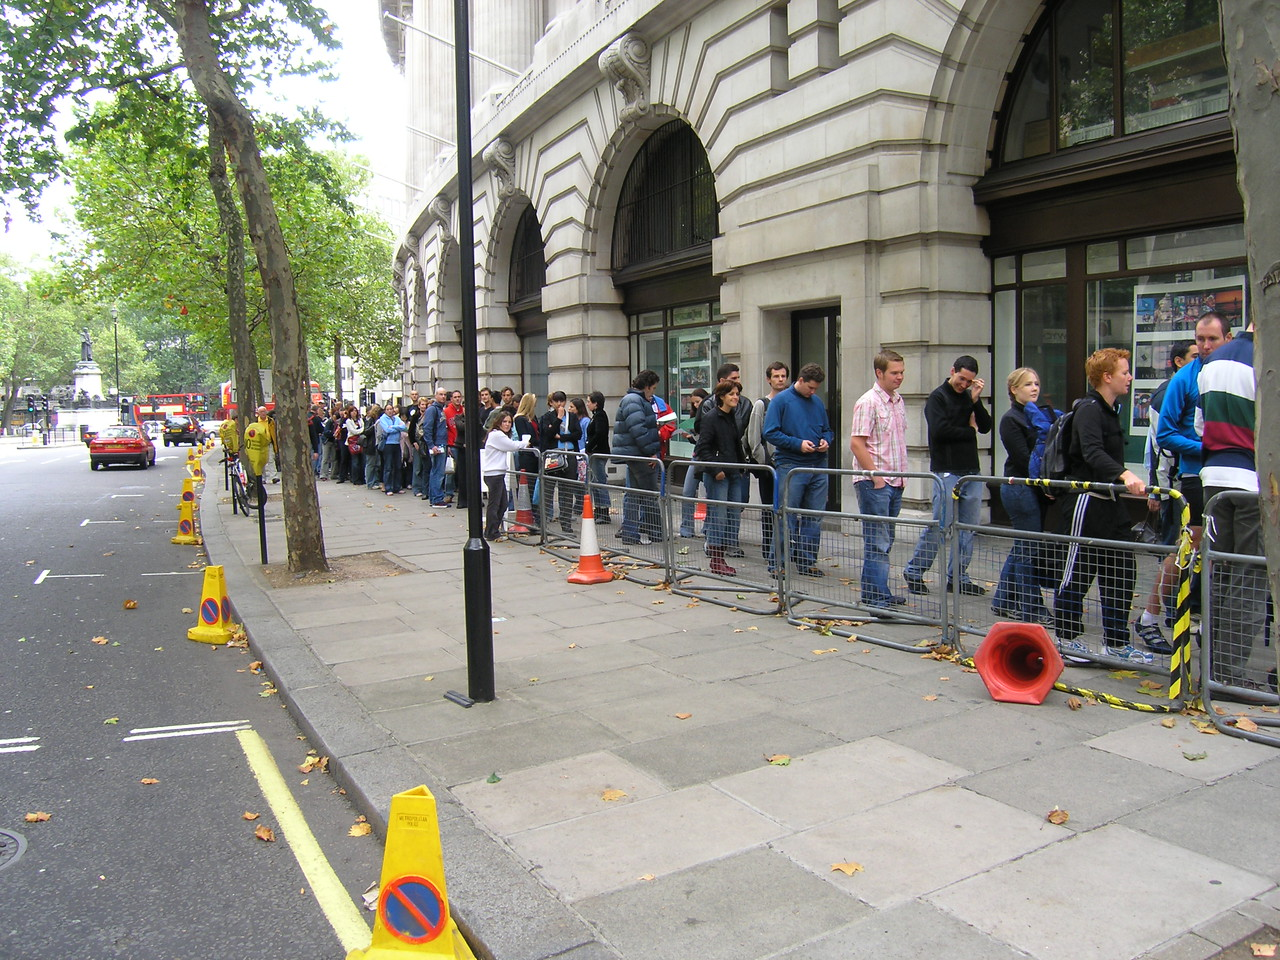 The queue.  It wraps all the way around the embassy